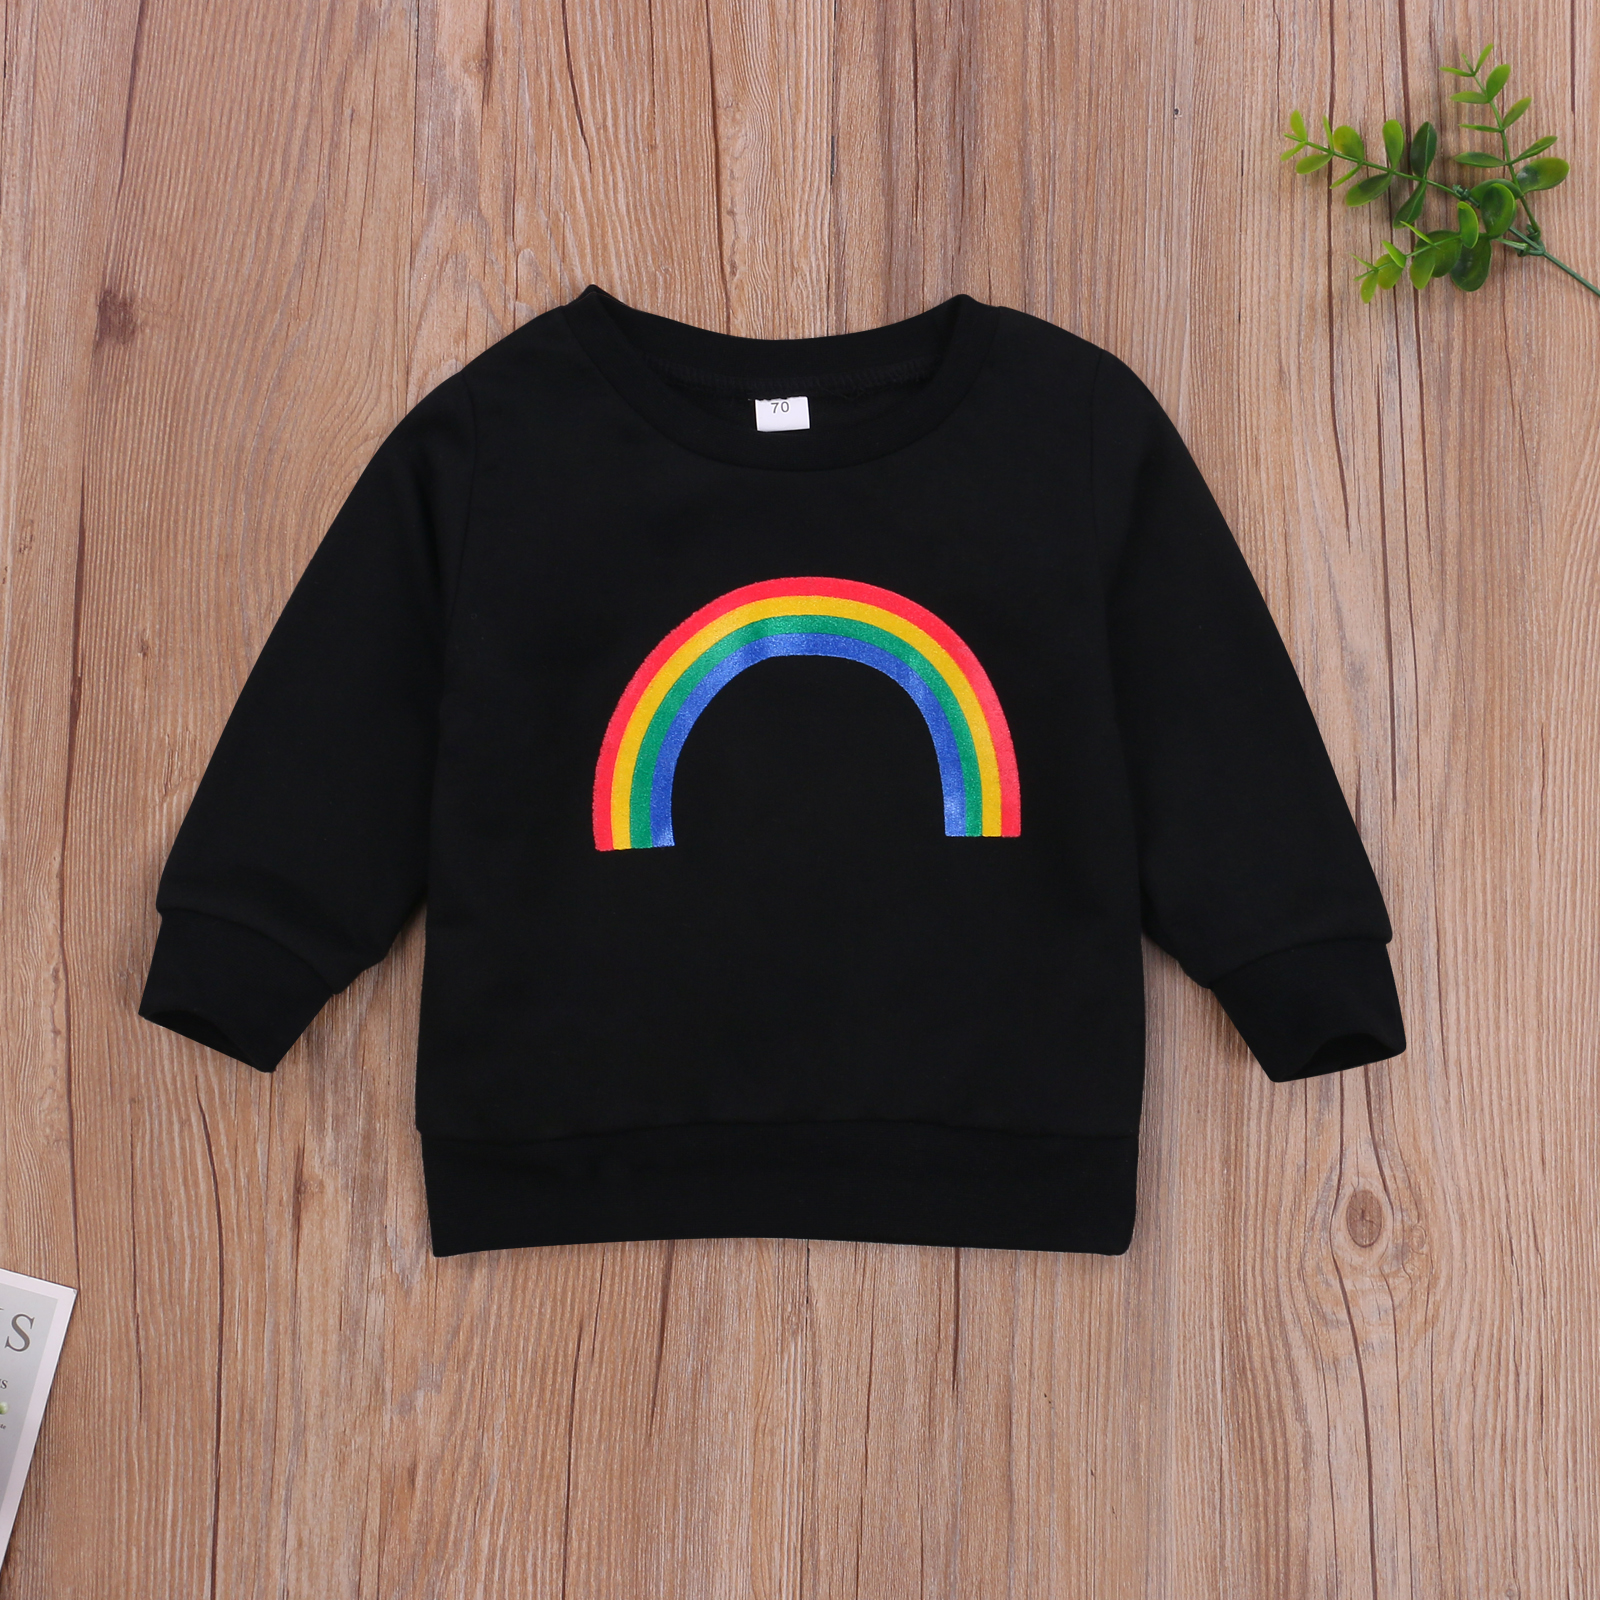 Pudcoco 2020 Autumn 0-3Y Toddler Baby Girl Boy Rainbow Pattern Print Long Sleeve Sweatshirt Infant Outfit Clothes White/Black 4